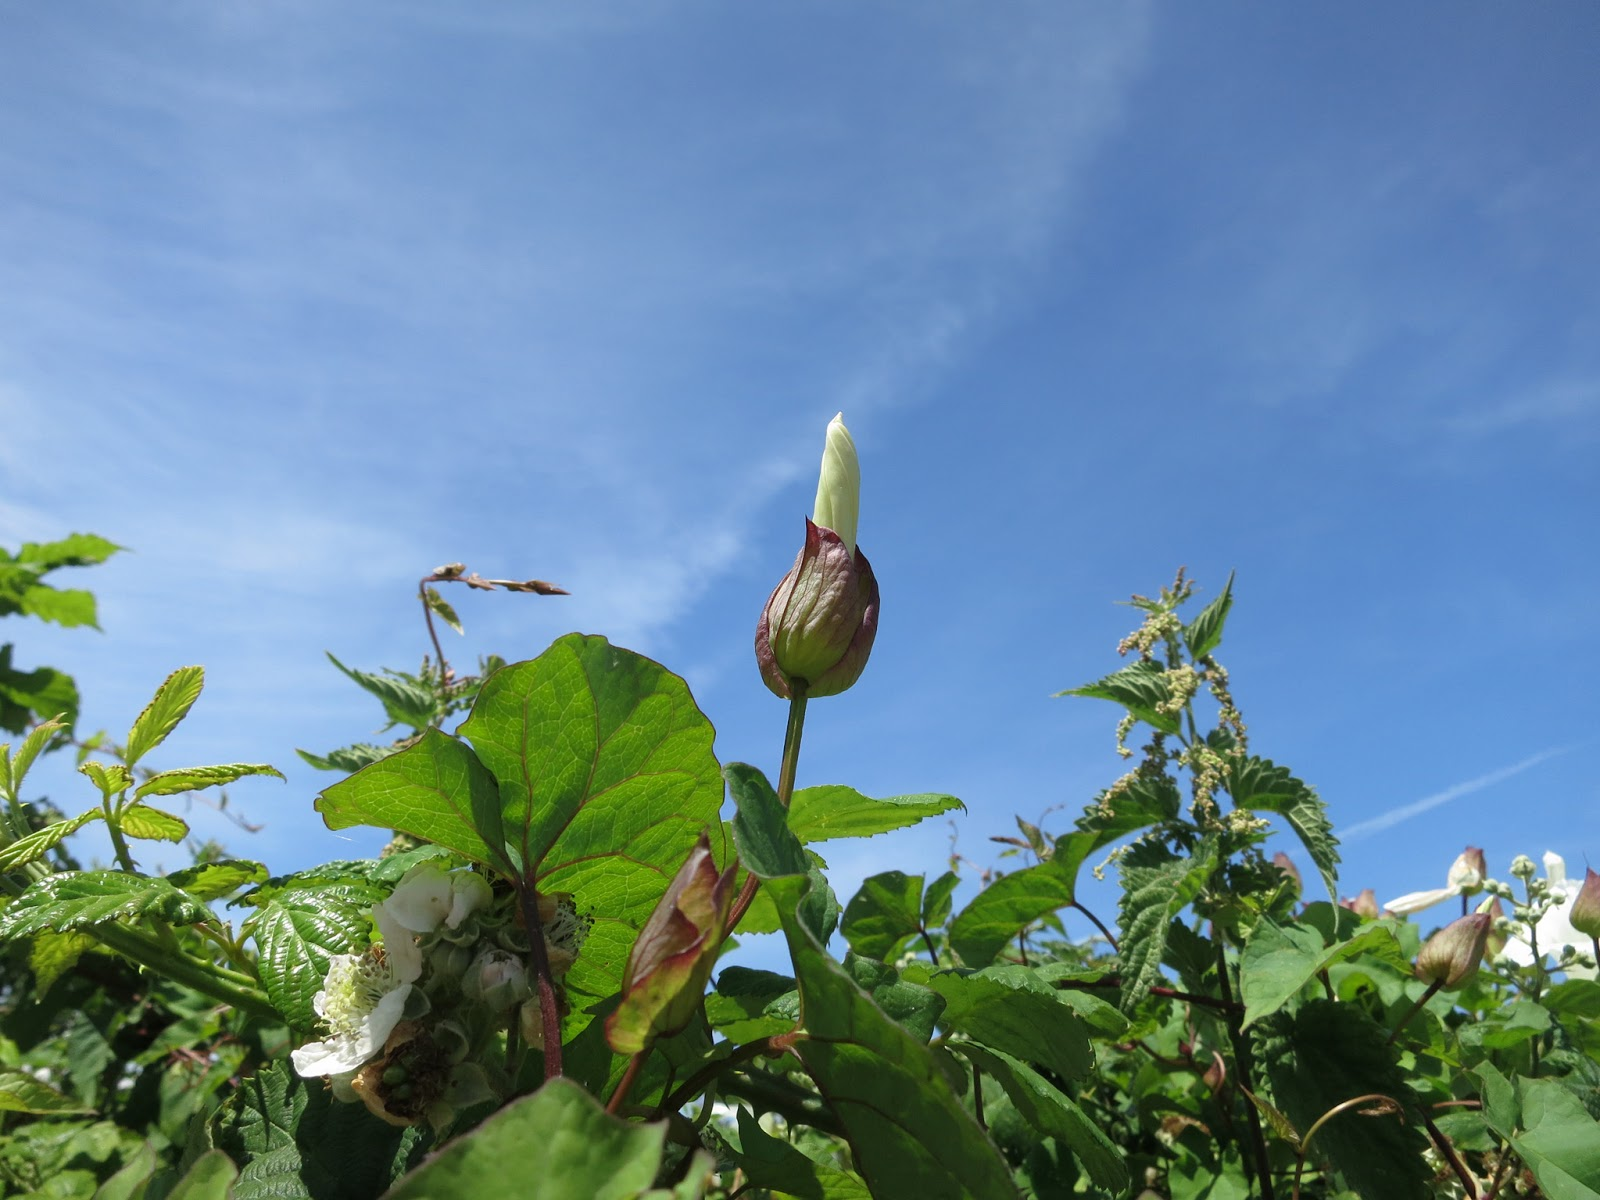 Flower bud of wild convolvulus against blue sky with contrails.